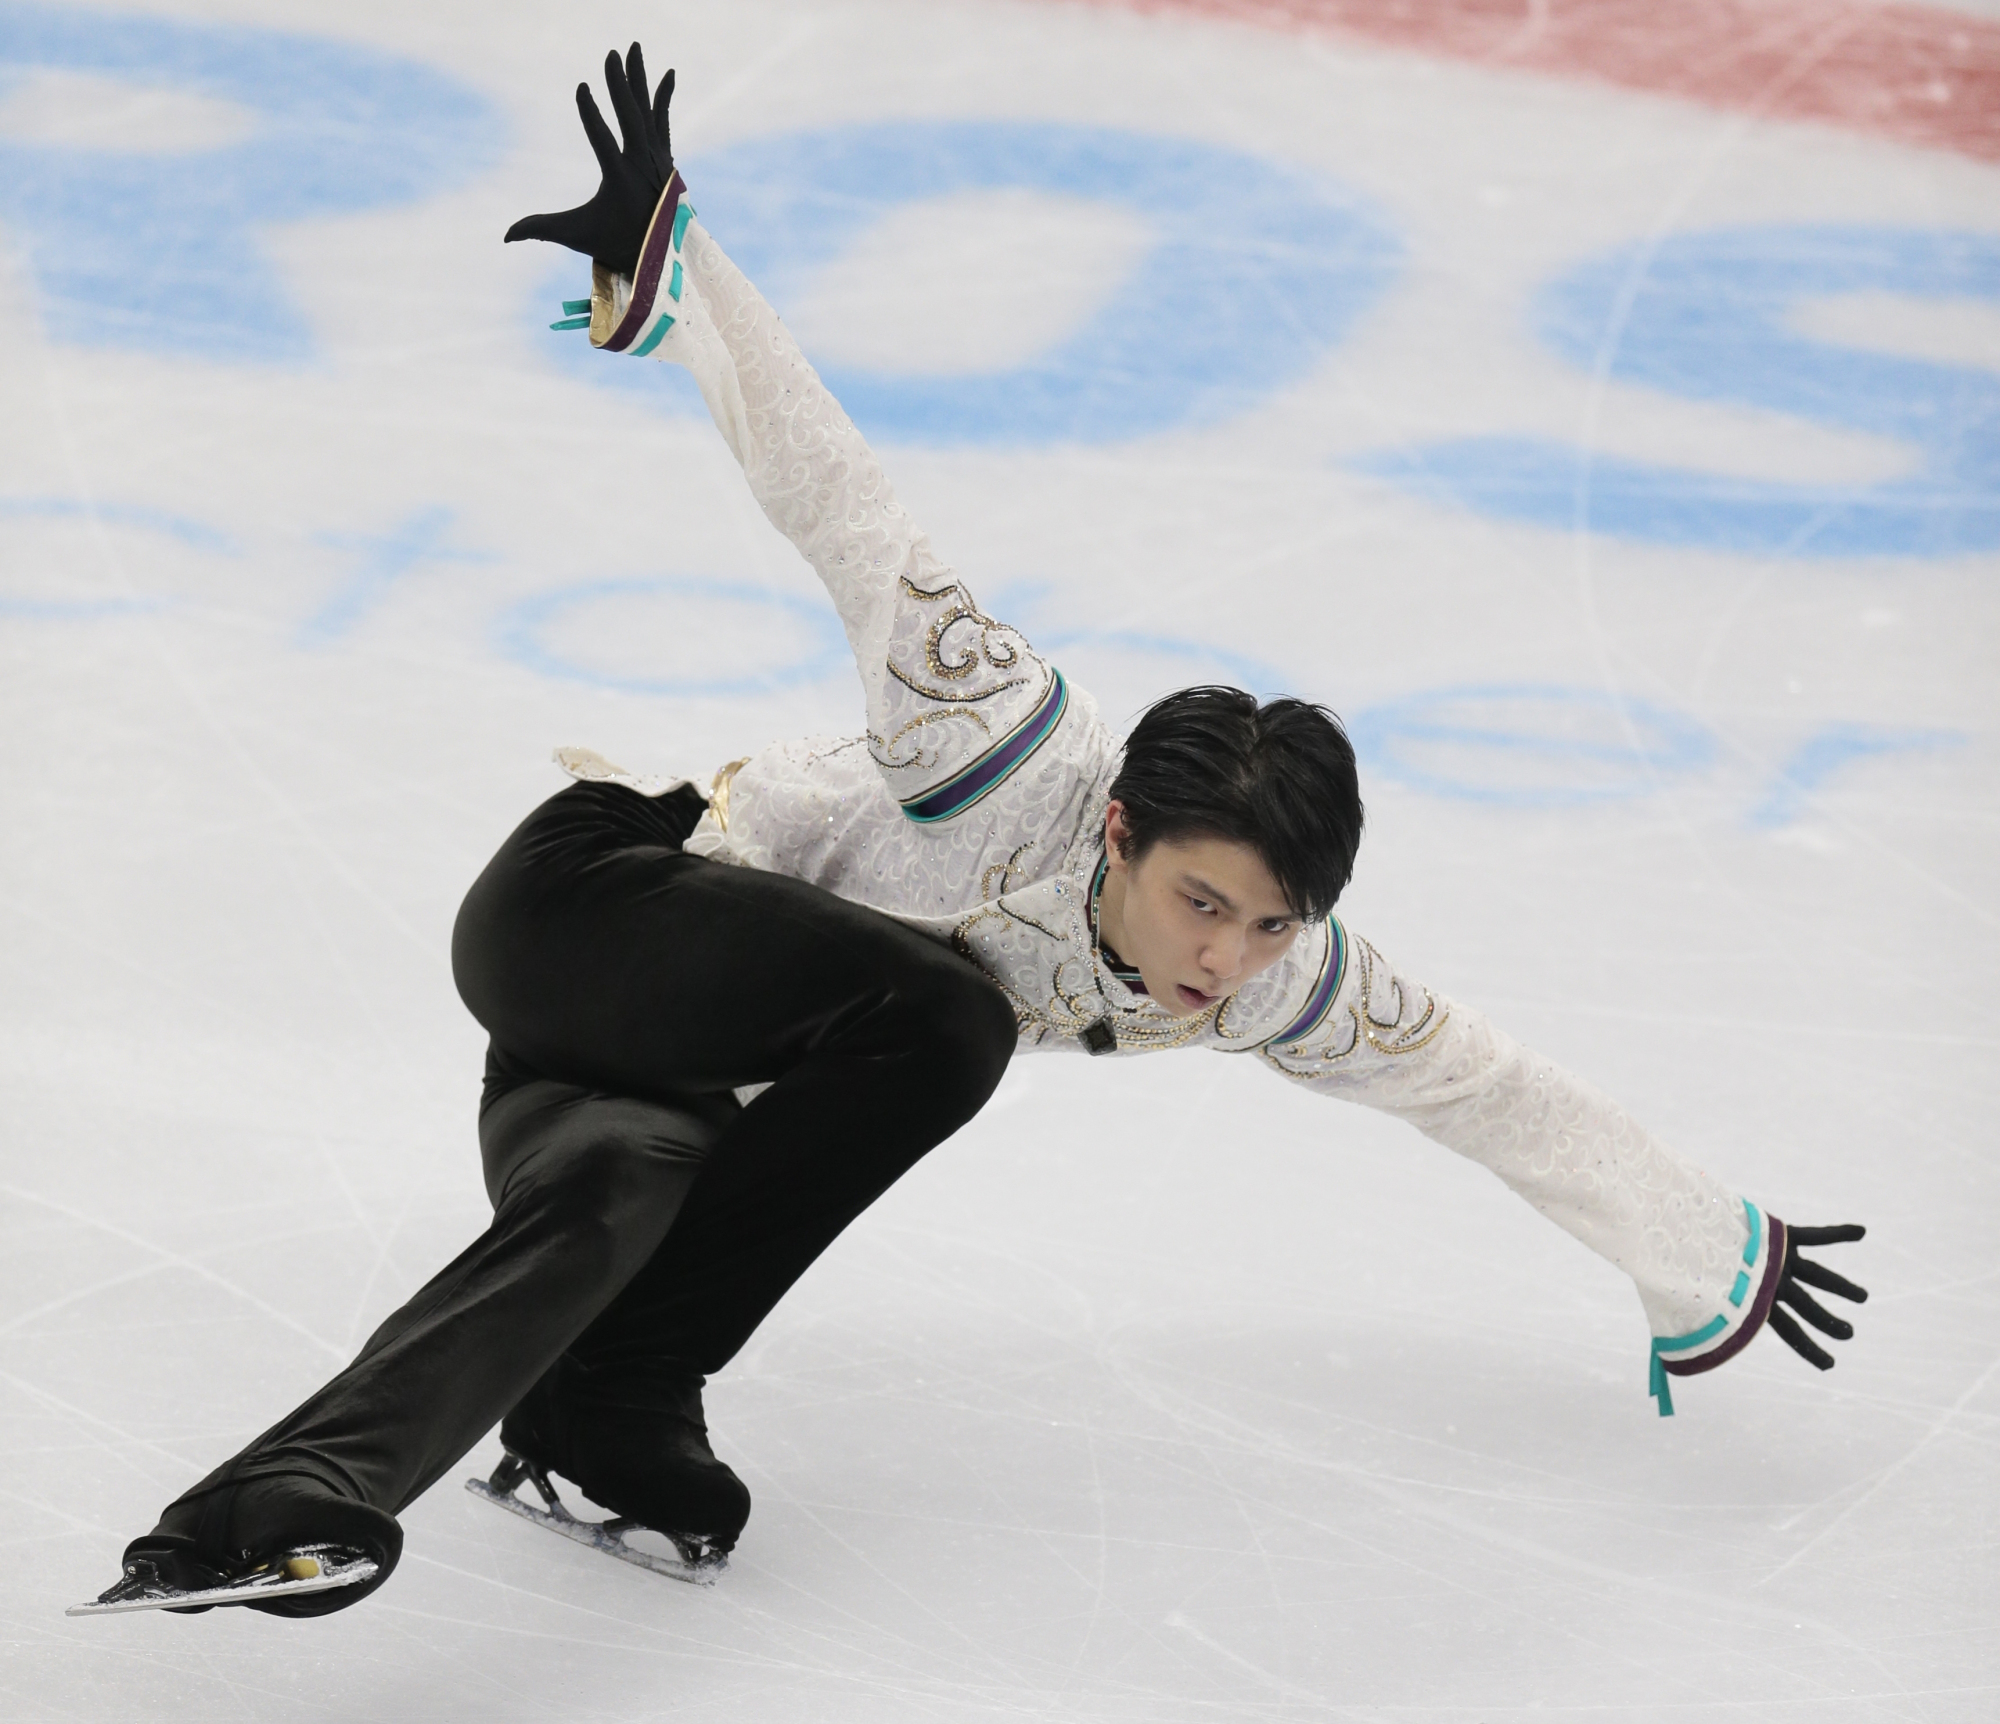 Yuzuru Hanyu's status for the national championships is still in doubt because of an injury he suffered last month. | AP